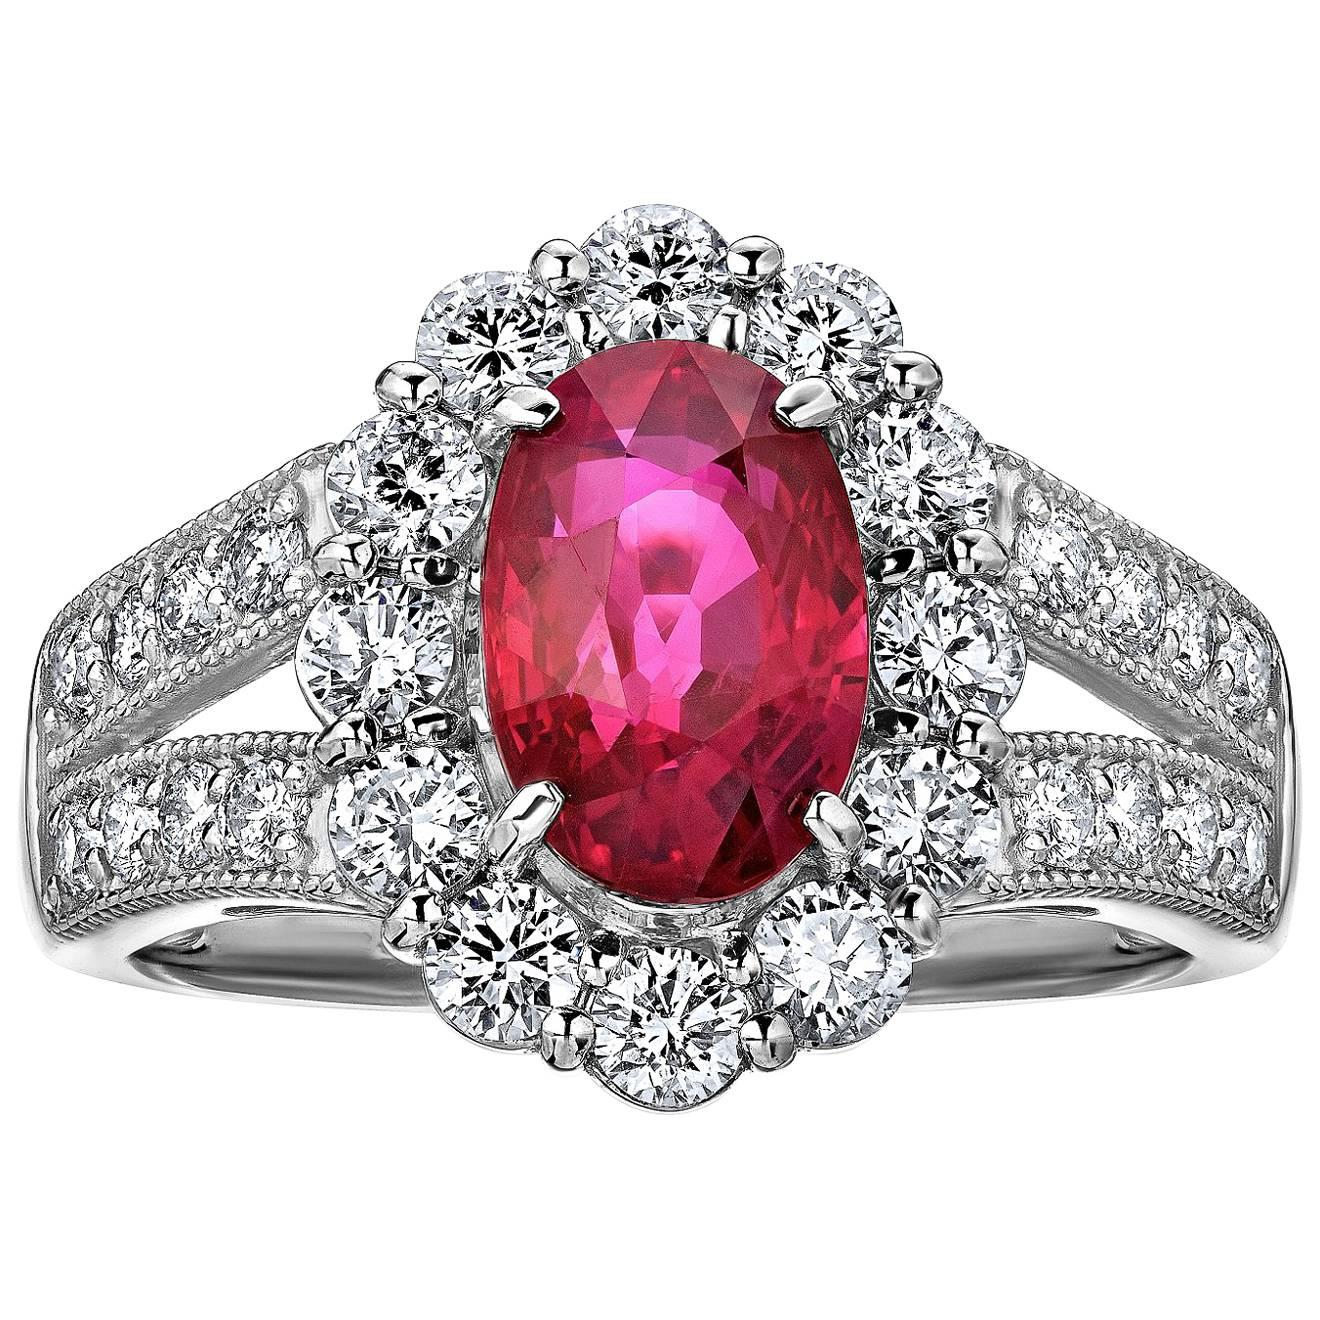 Emilio Jewelry Pigeons Blood Burmese Ruby Diamond Platinum Ring